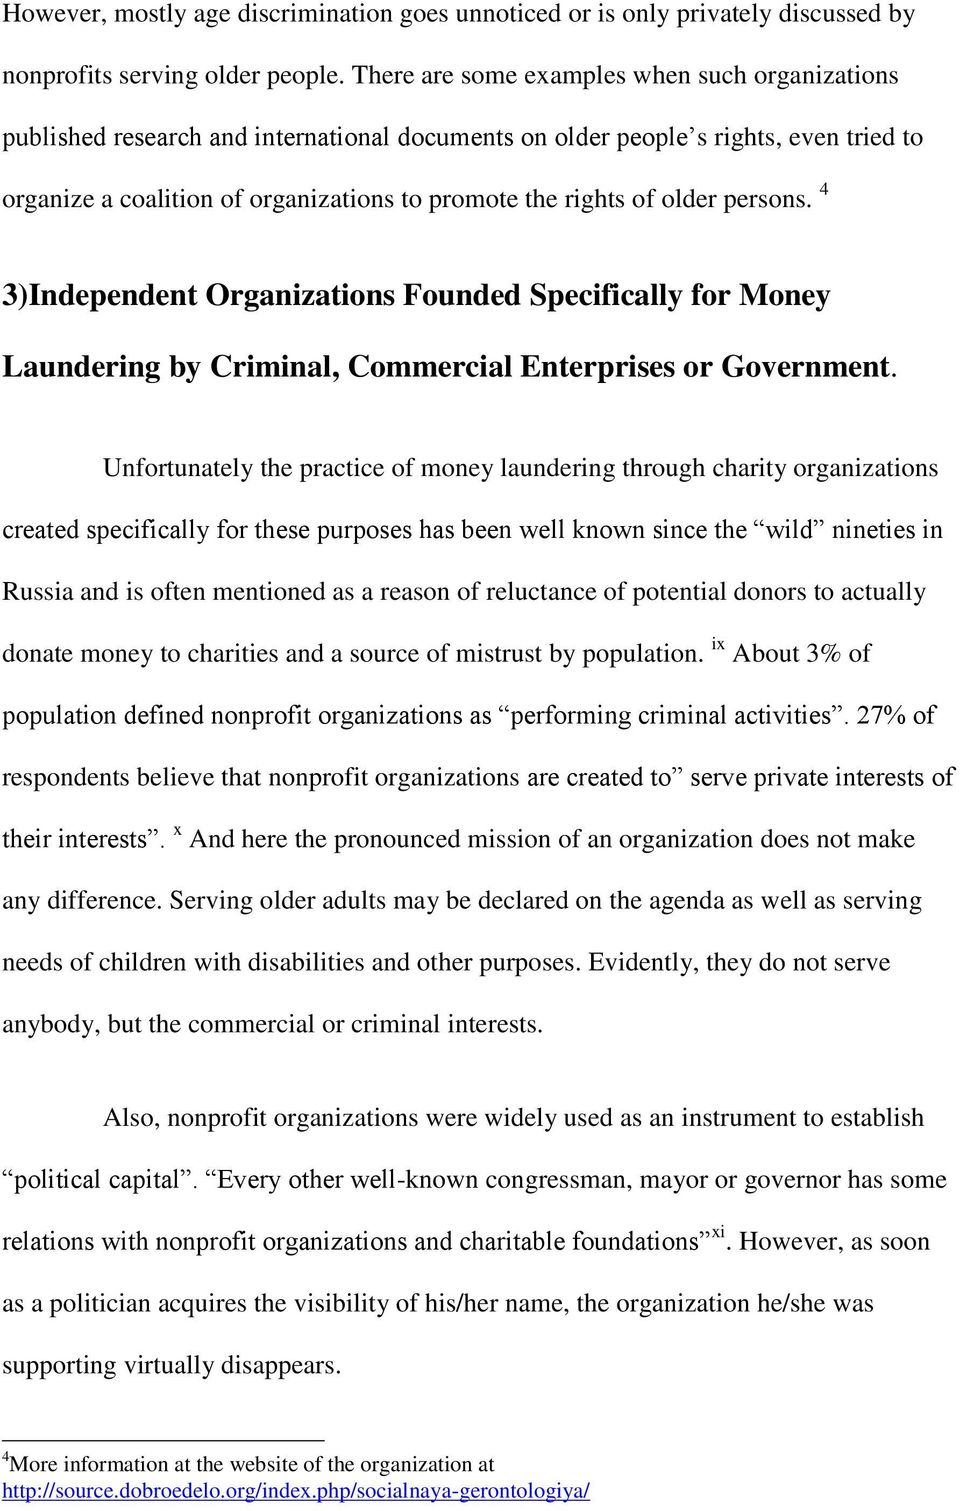 older persons. 4 3)Independent Organizations Founded Specifically for Money Laundering by Criminal, Commercial Enterprises or Government.